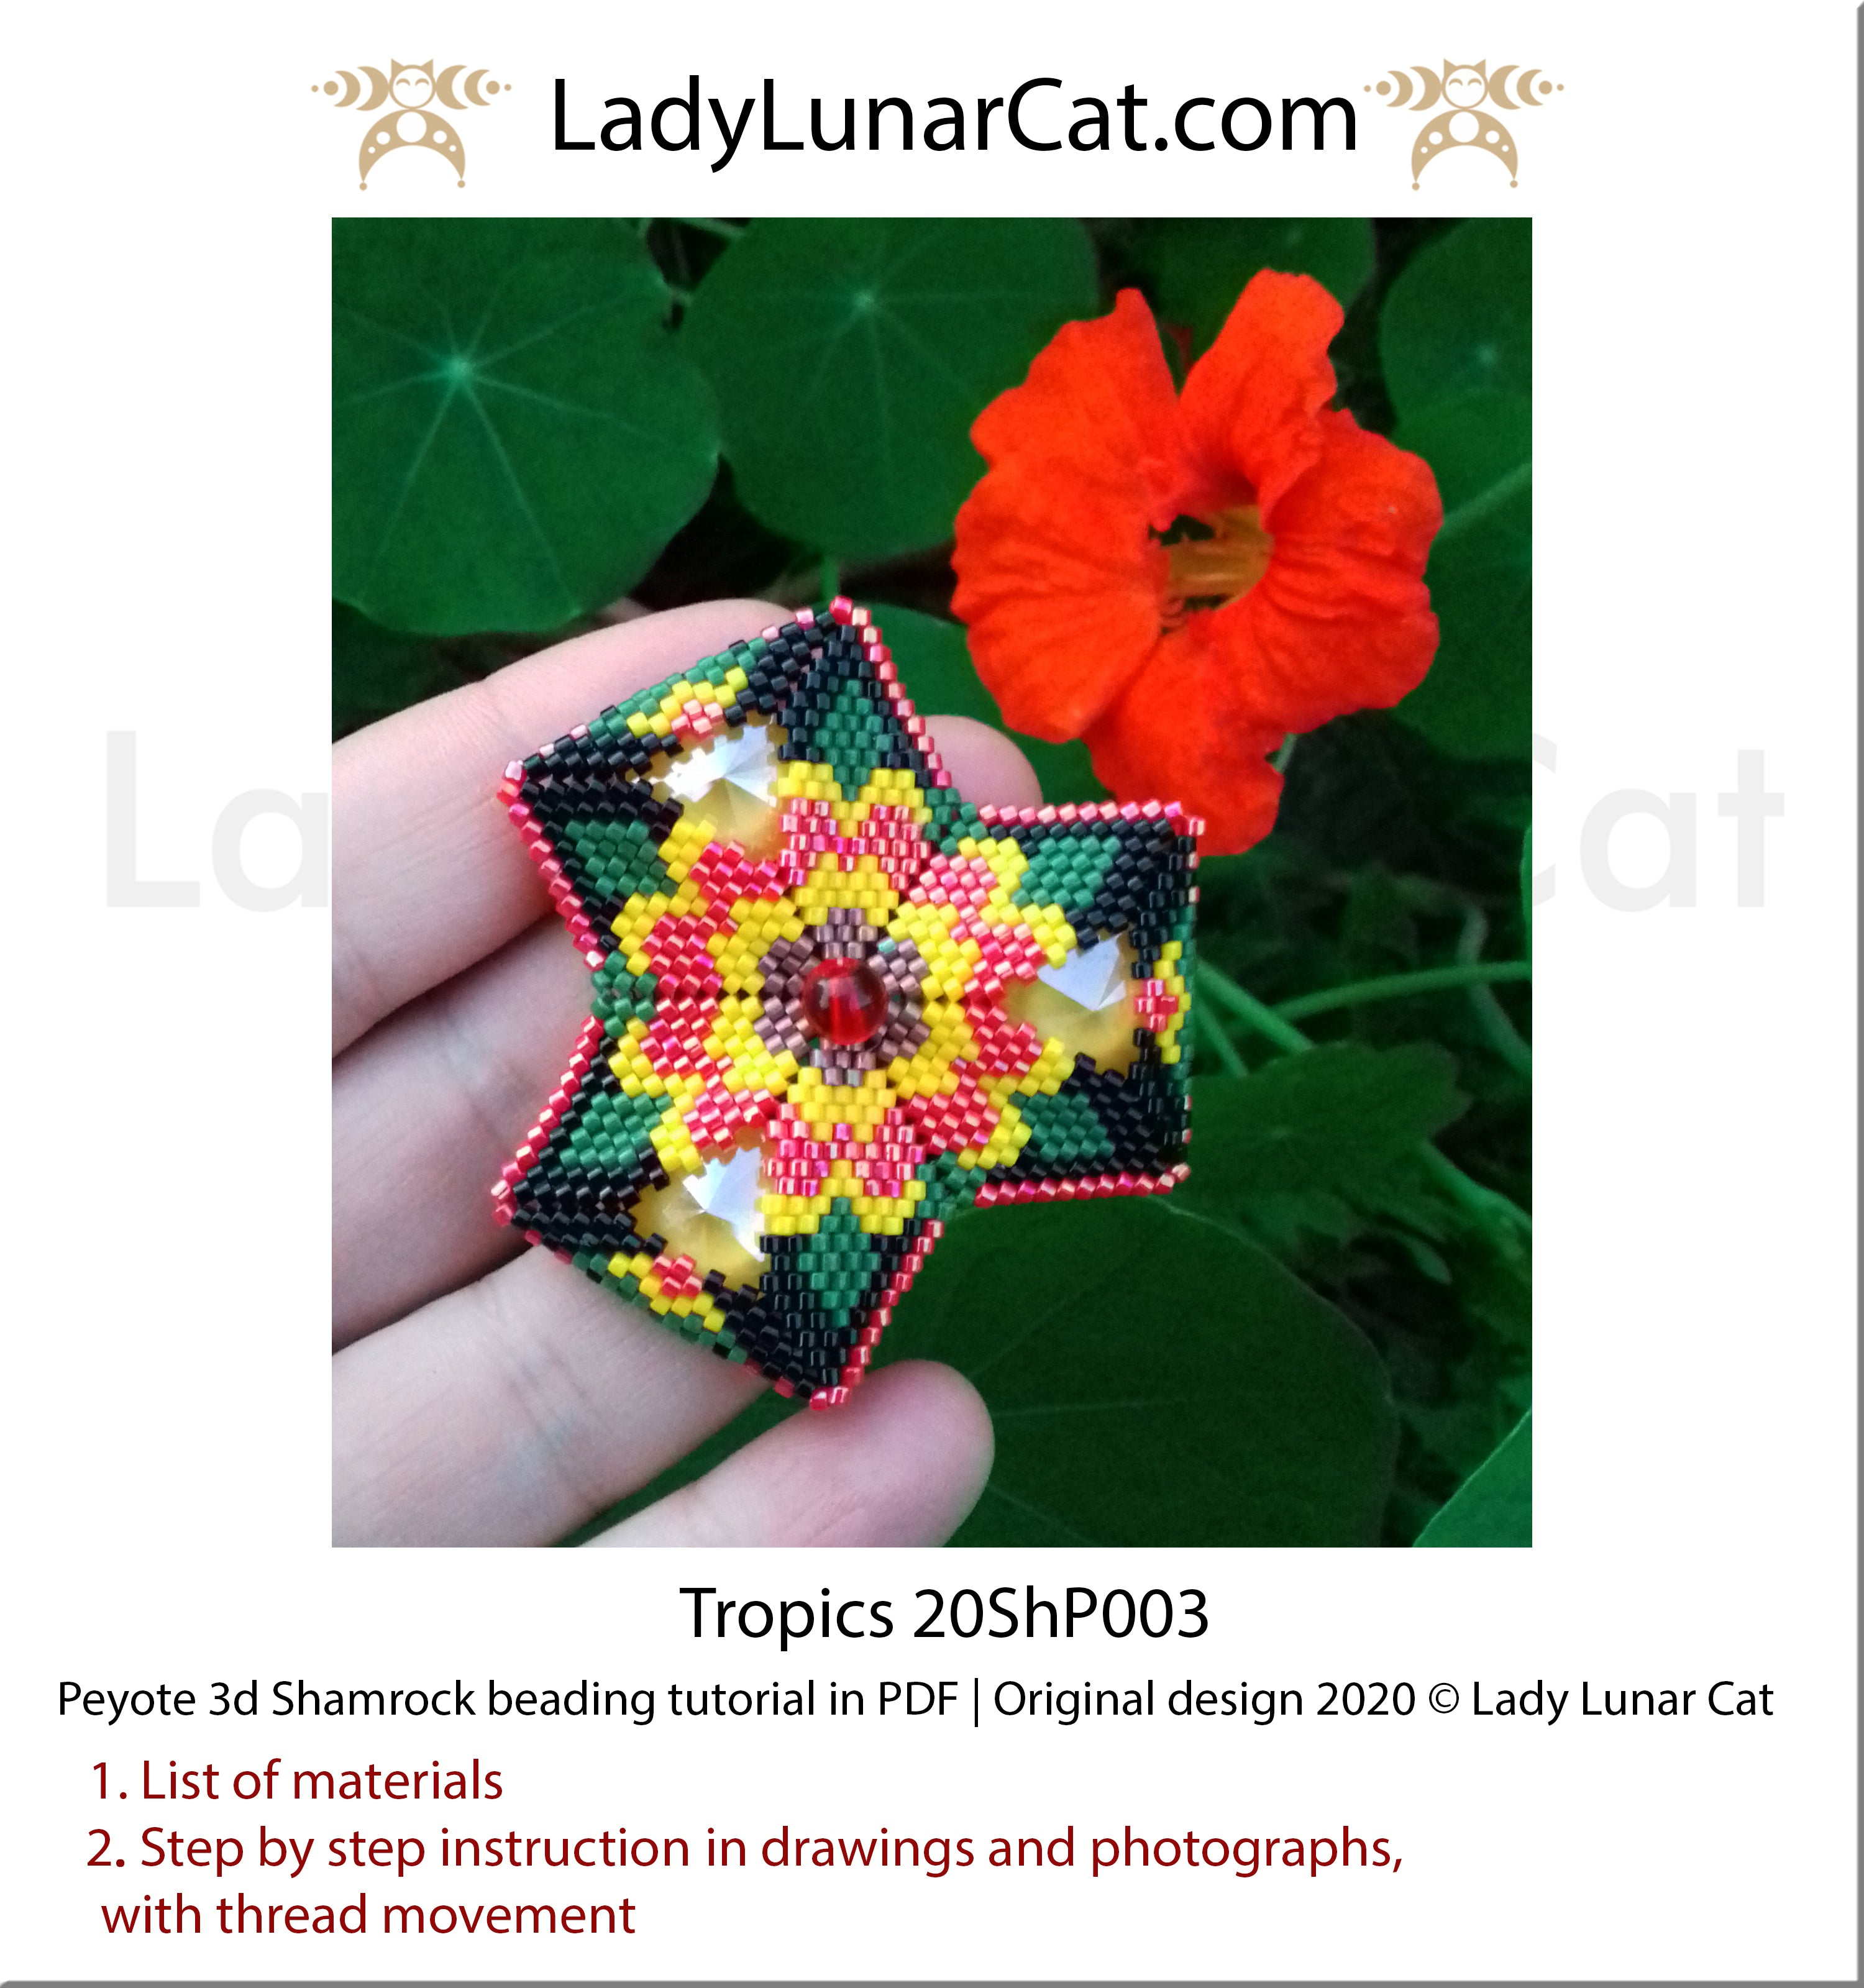 Beading tutorial peyote 3d Shamrock Tropics flower Step by step instruction by Lady Lunar Cat | Beading pattern